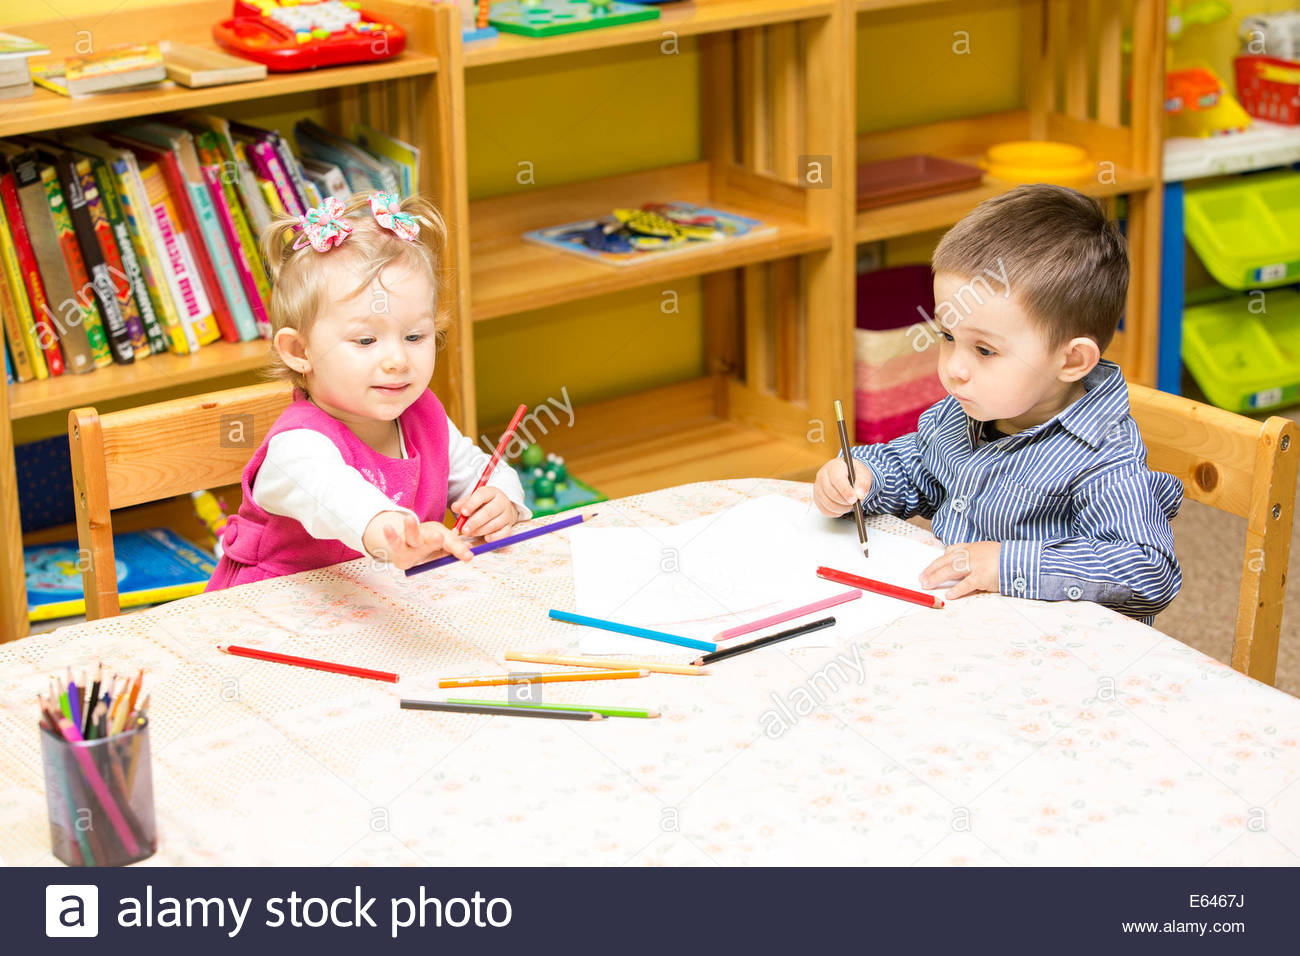 1300x956 Two Little Kids Drawing With Colorful Pencils In Preschool